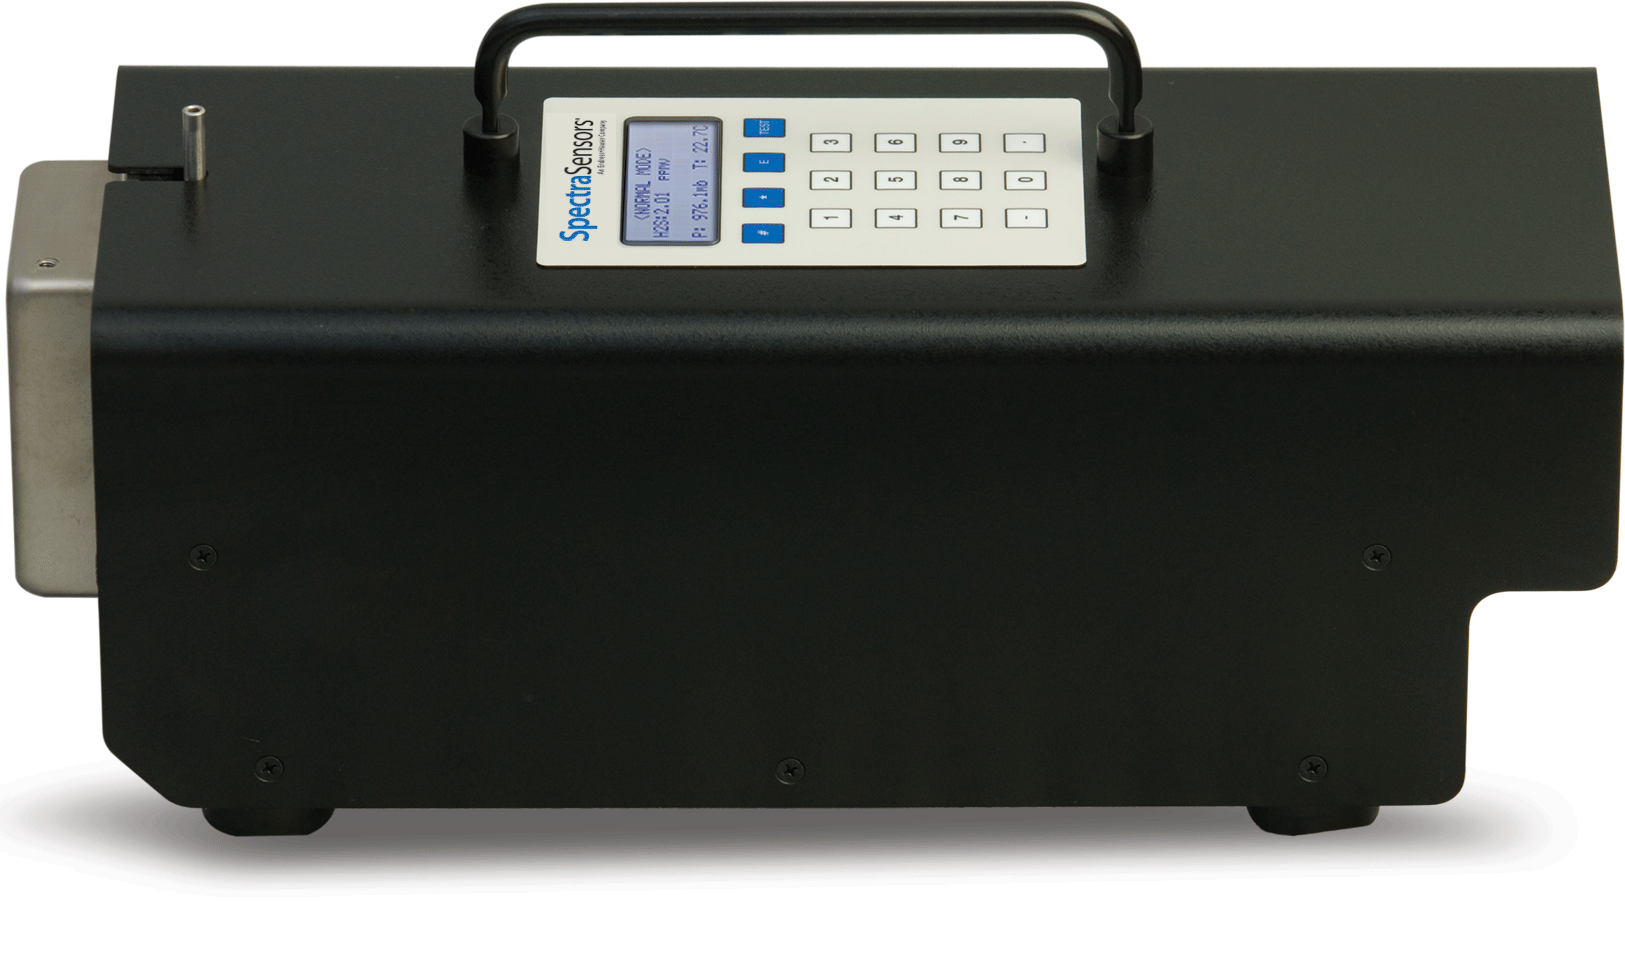 SS1000 Portable Moisture Analyzer